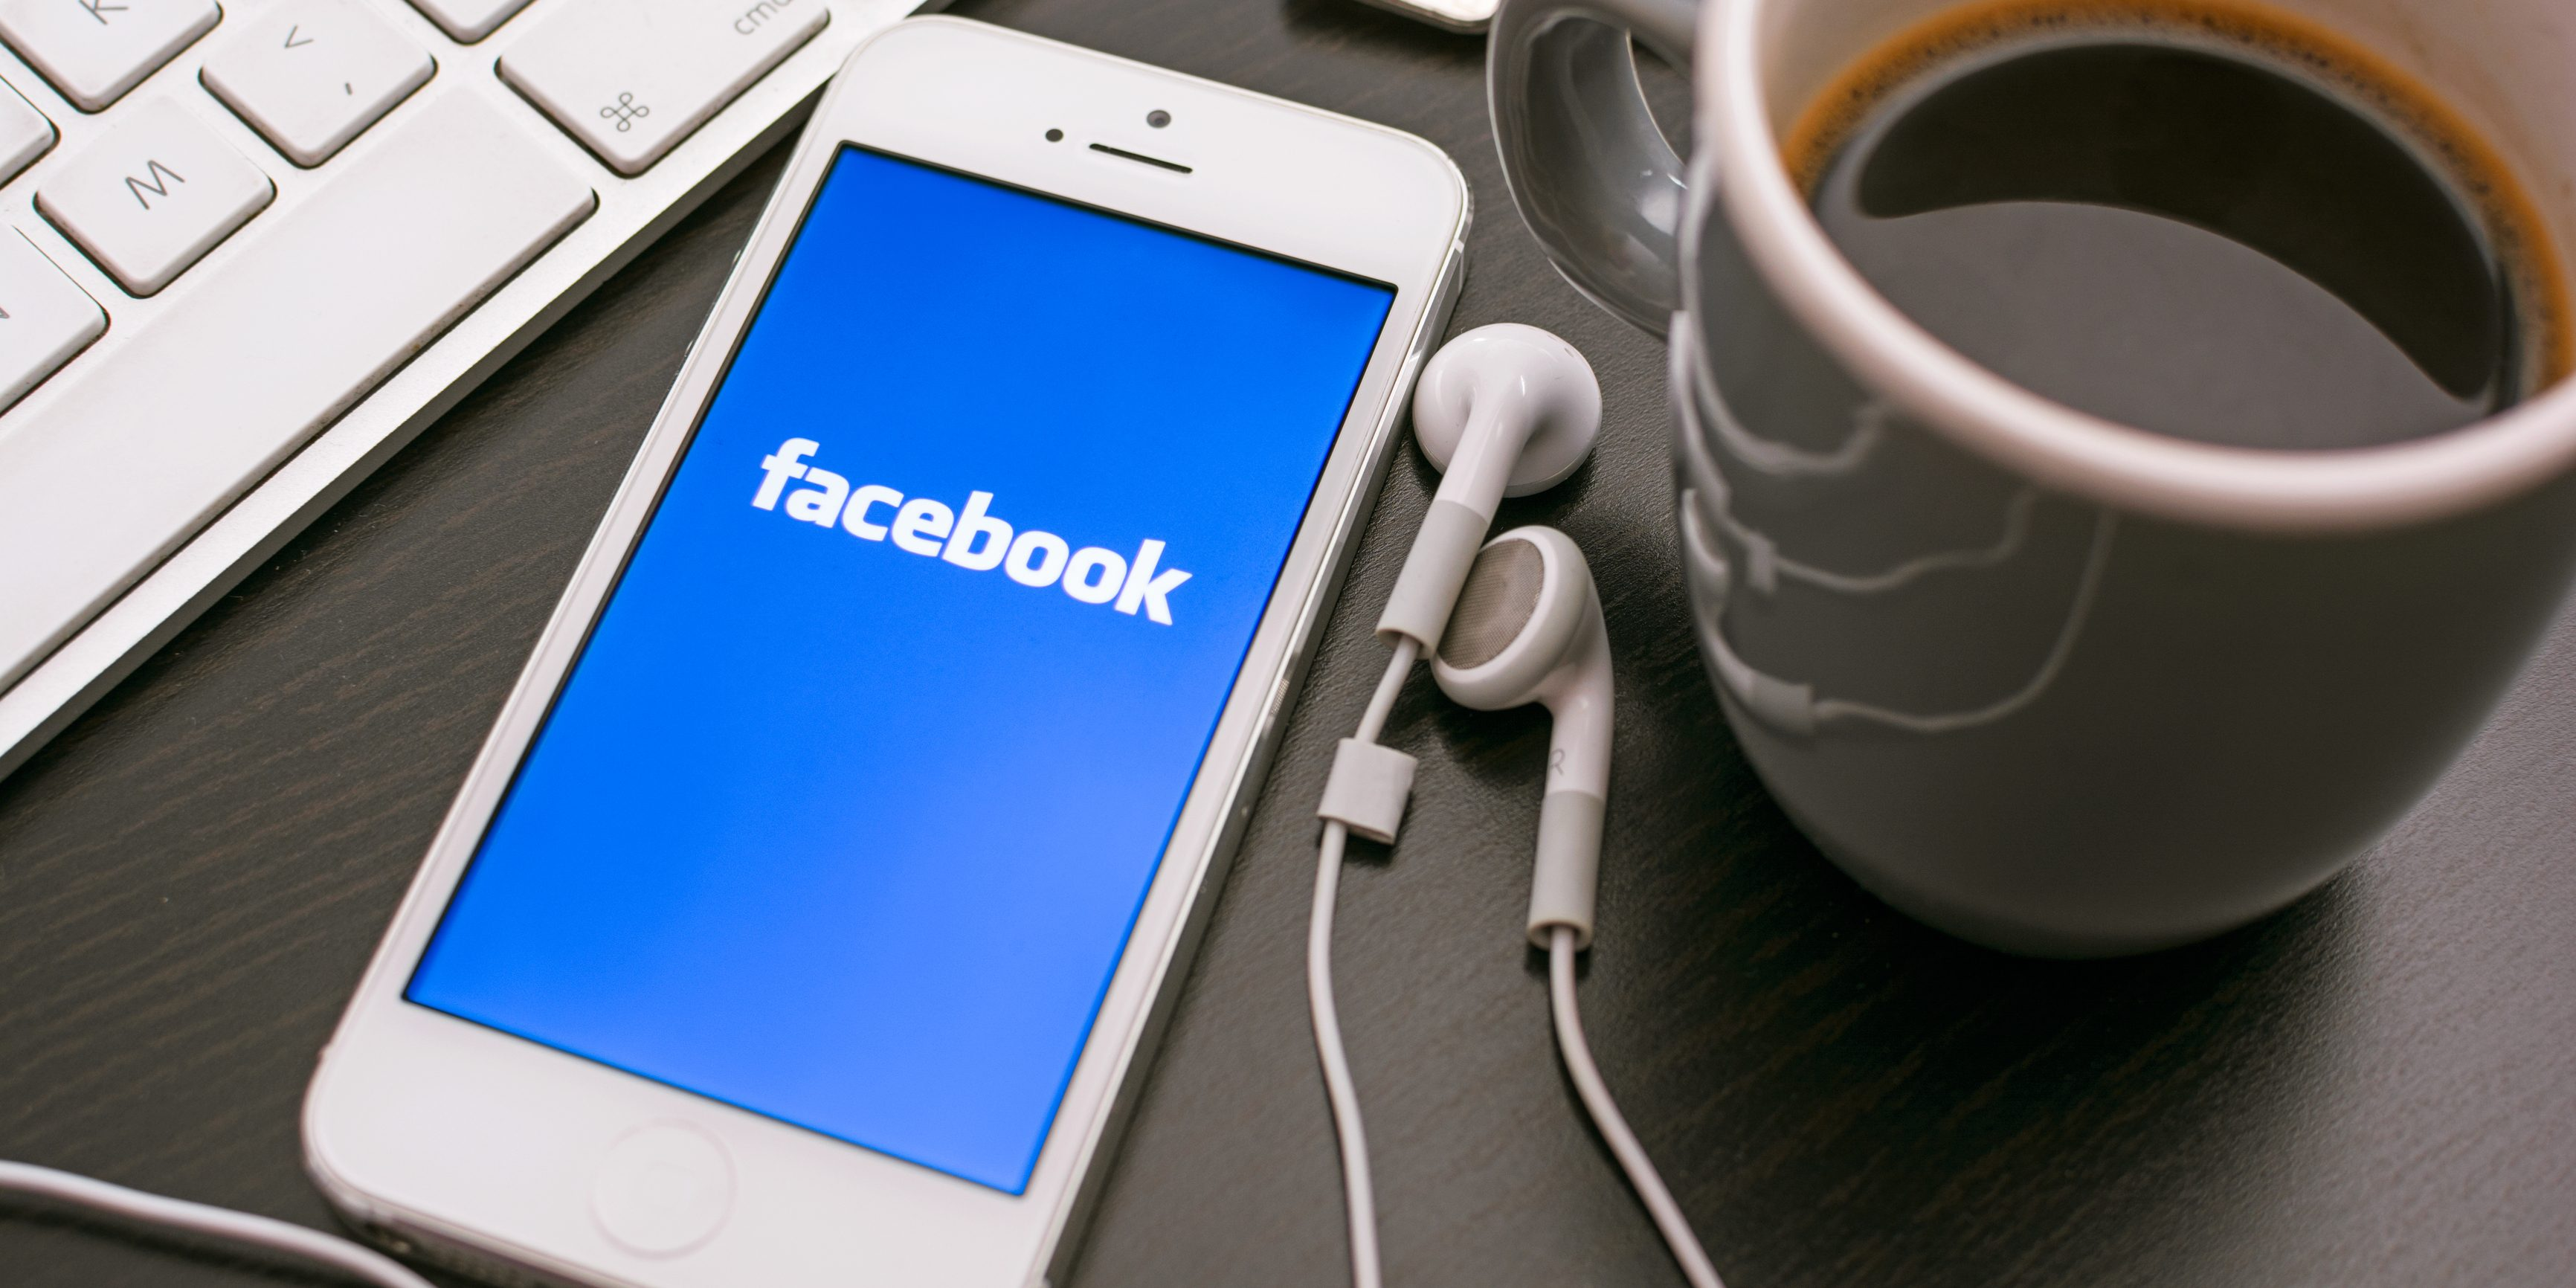 Phone displaying Facebook app with earbuds and coffee mug